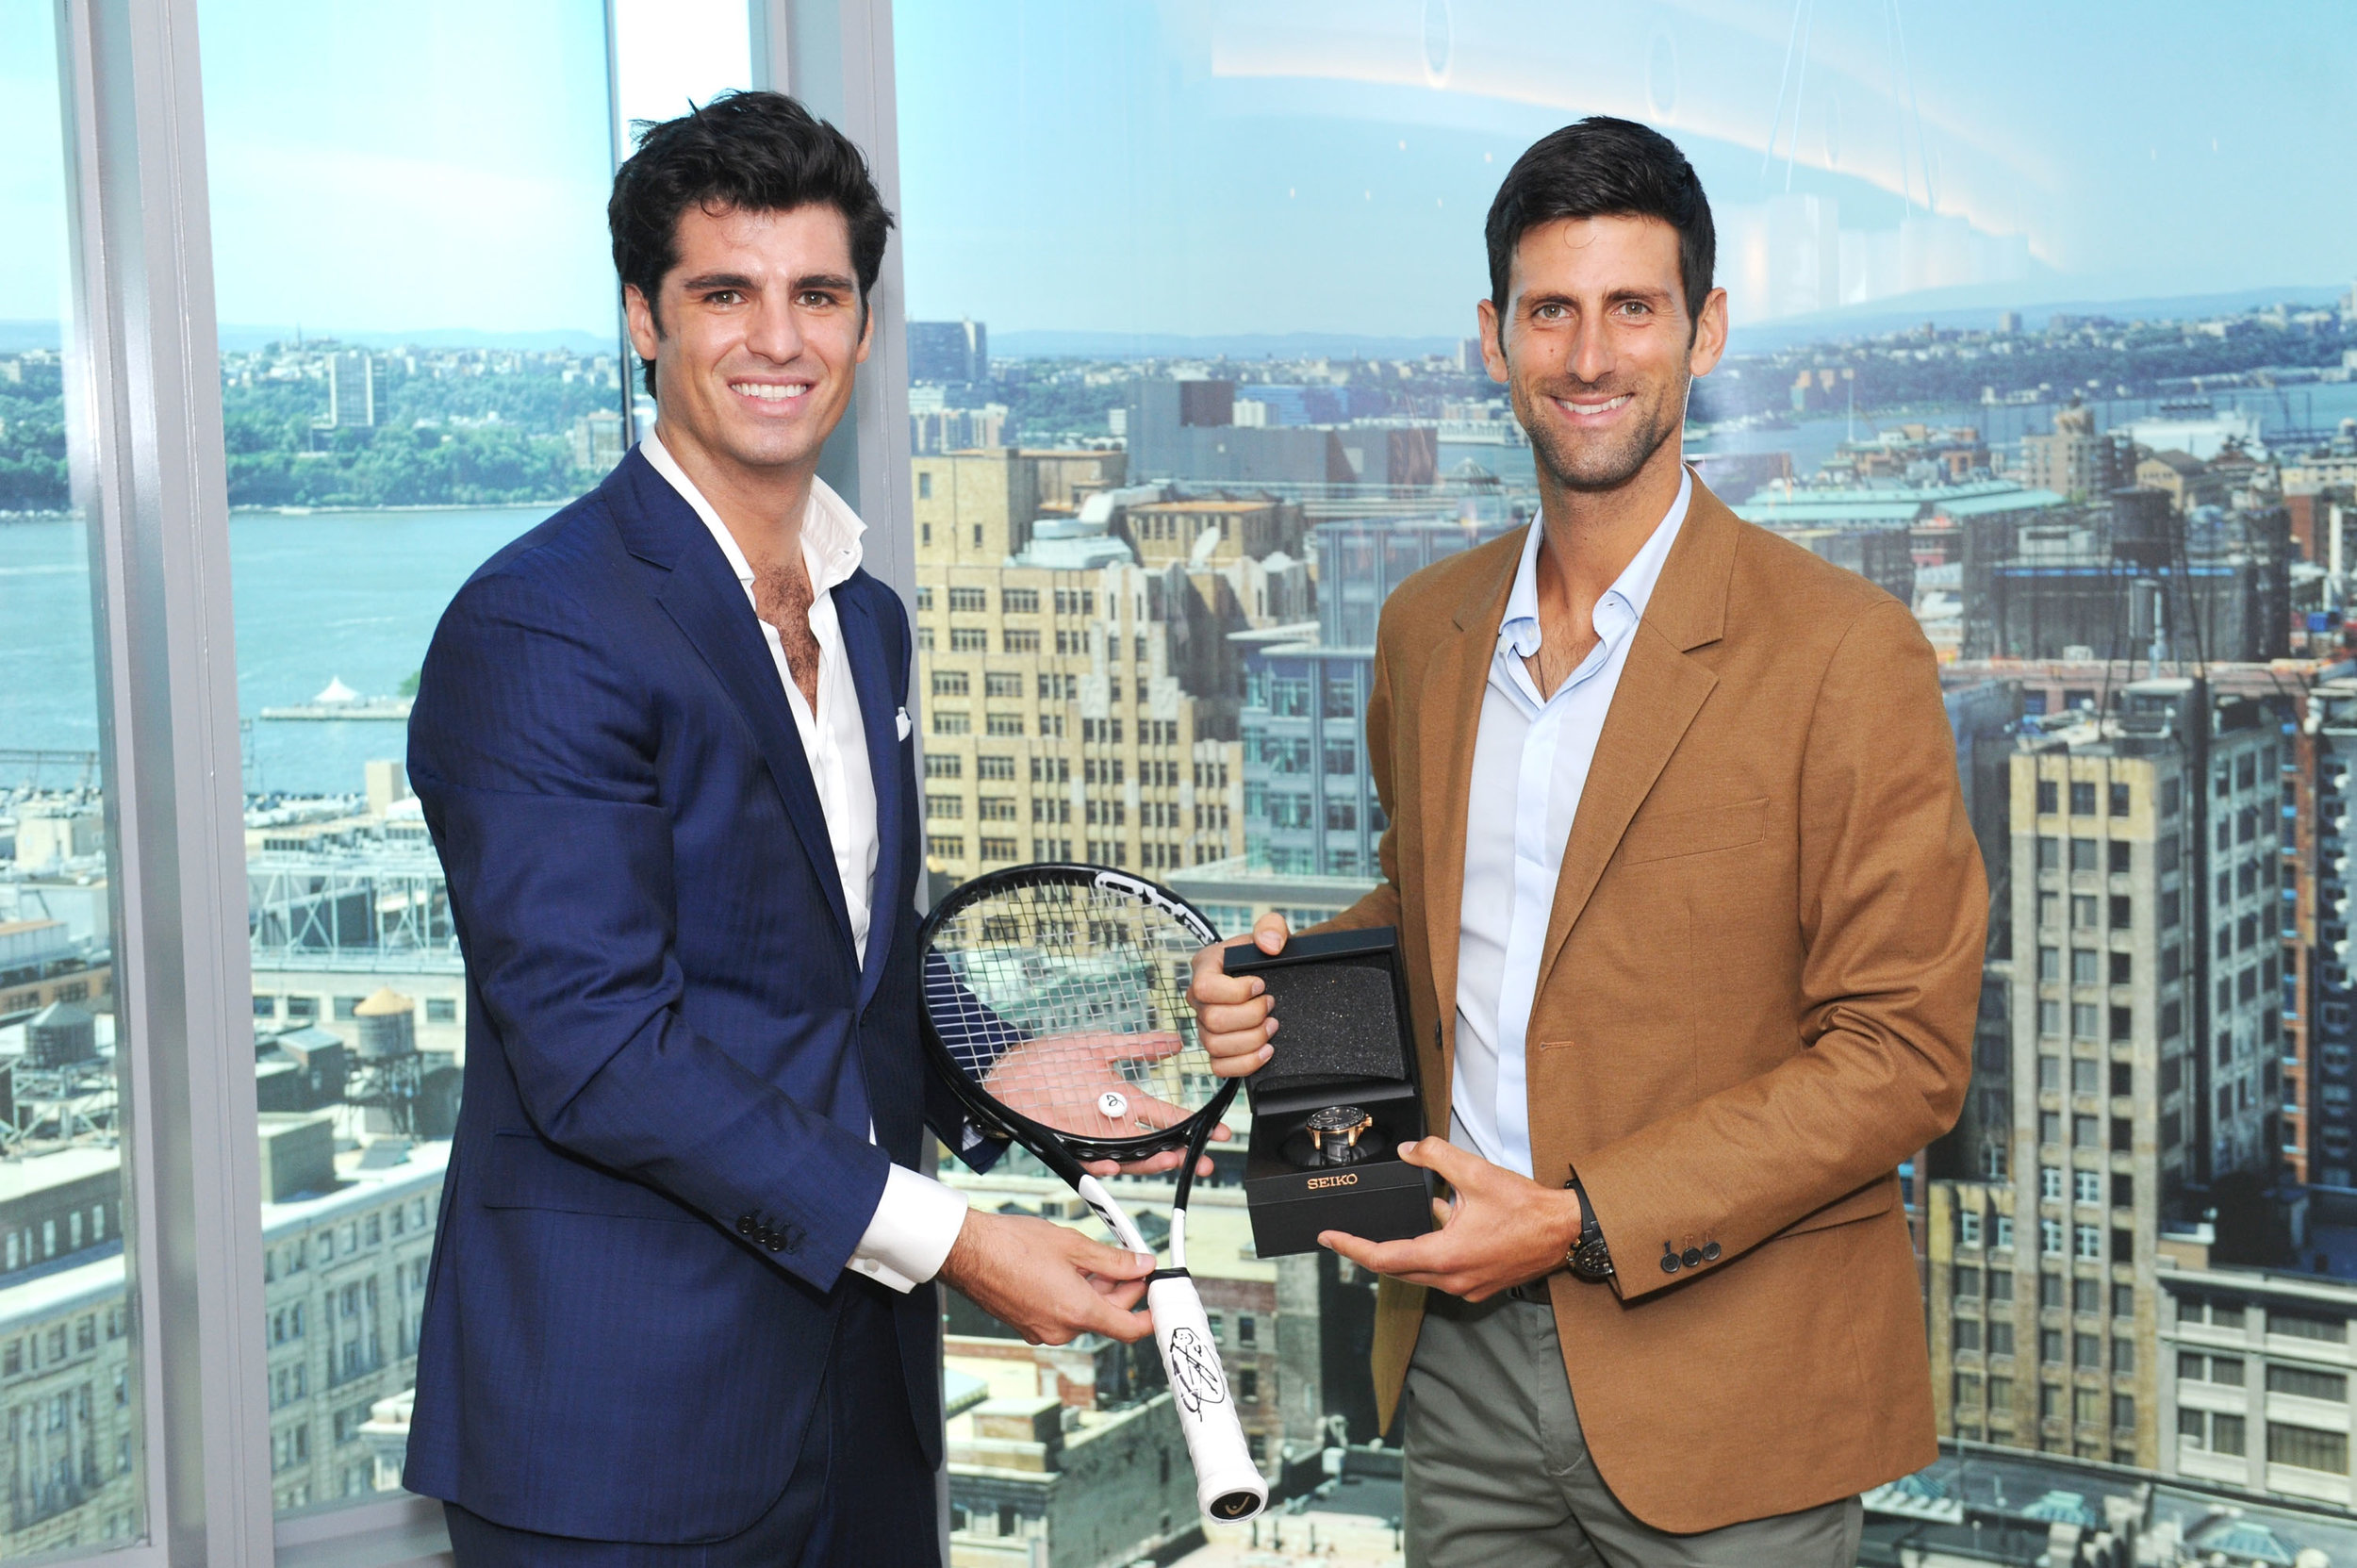 Alessandro Pallaoro and Novak Djokovic